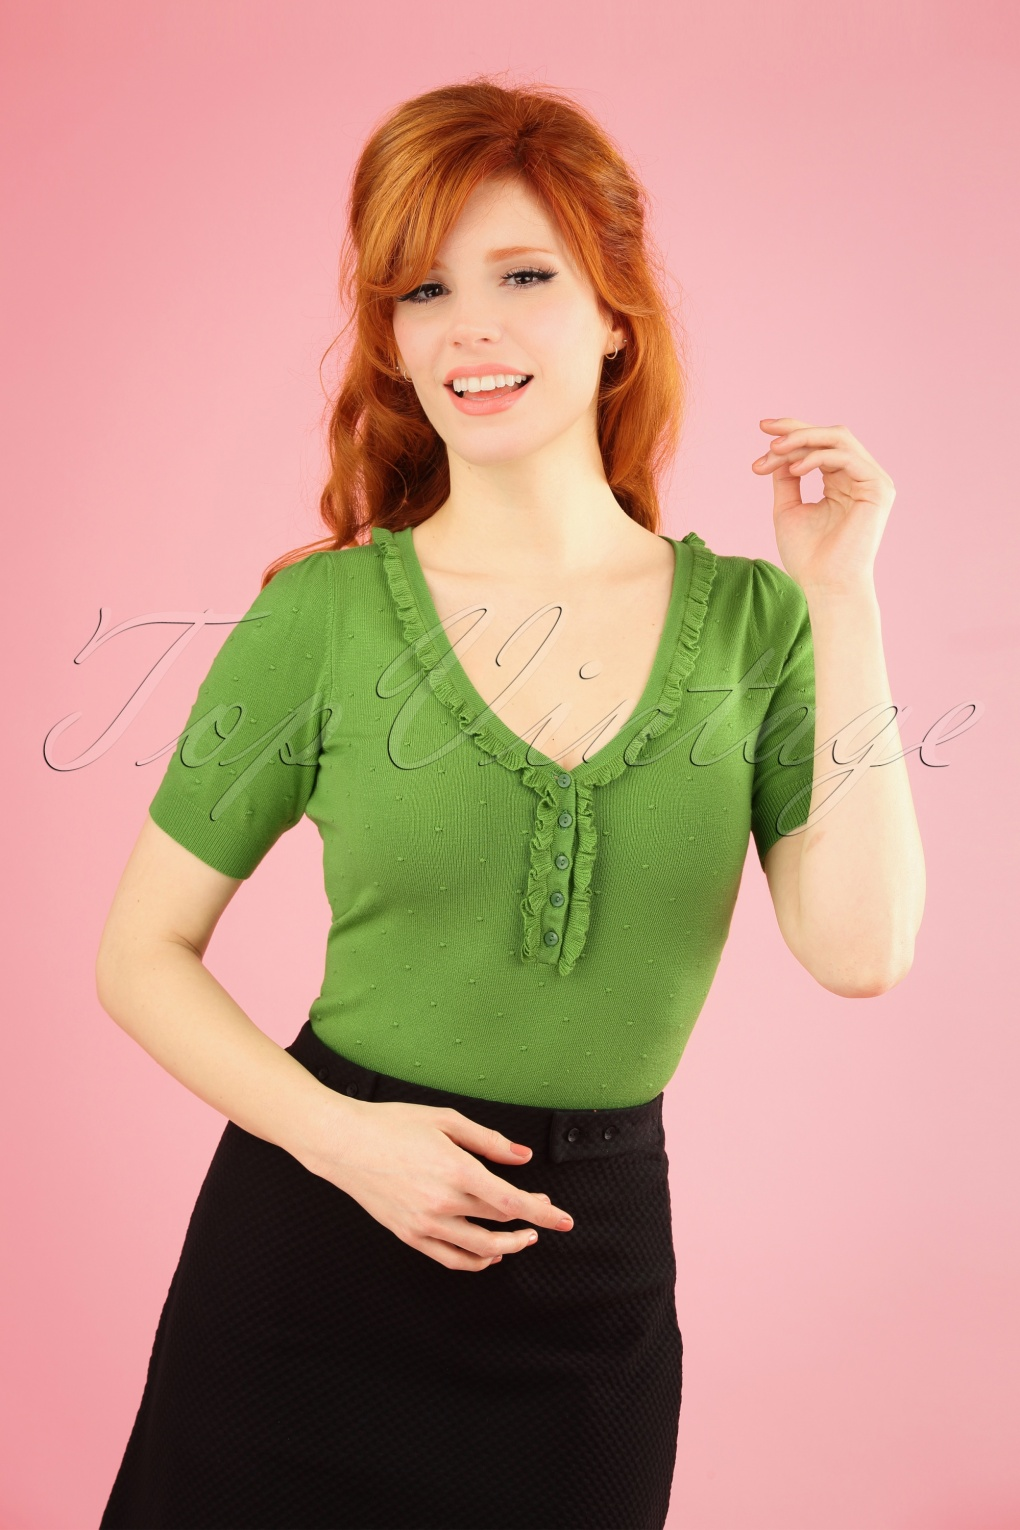 Women's 70s Shirts, Blouses, Hippie Tops 60s Droplet Ruffle V Neck Top in Kiwi Green �48.41 AT vintagedancer.com